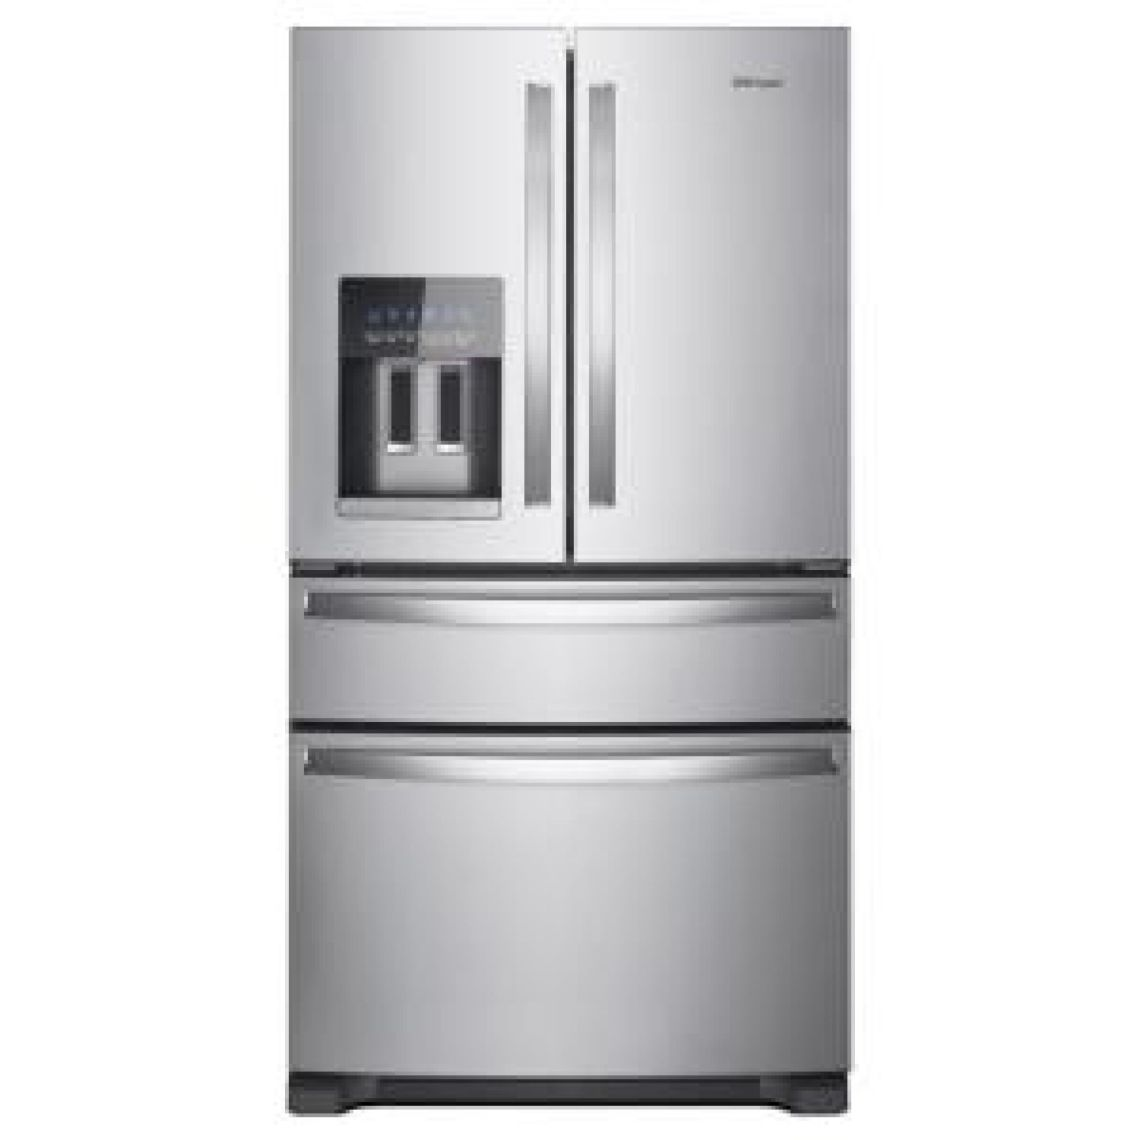 Whirlpool 36 in. W 25.0 cu. ft. French Door Refrigerator in Fingerprint Resistant Stainless Steel-WRX735SDHZ - The Home Depot